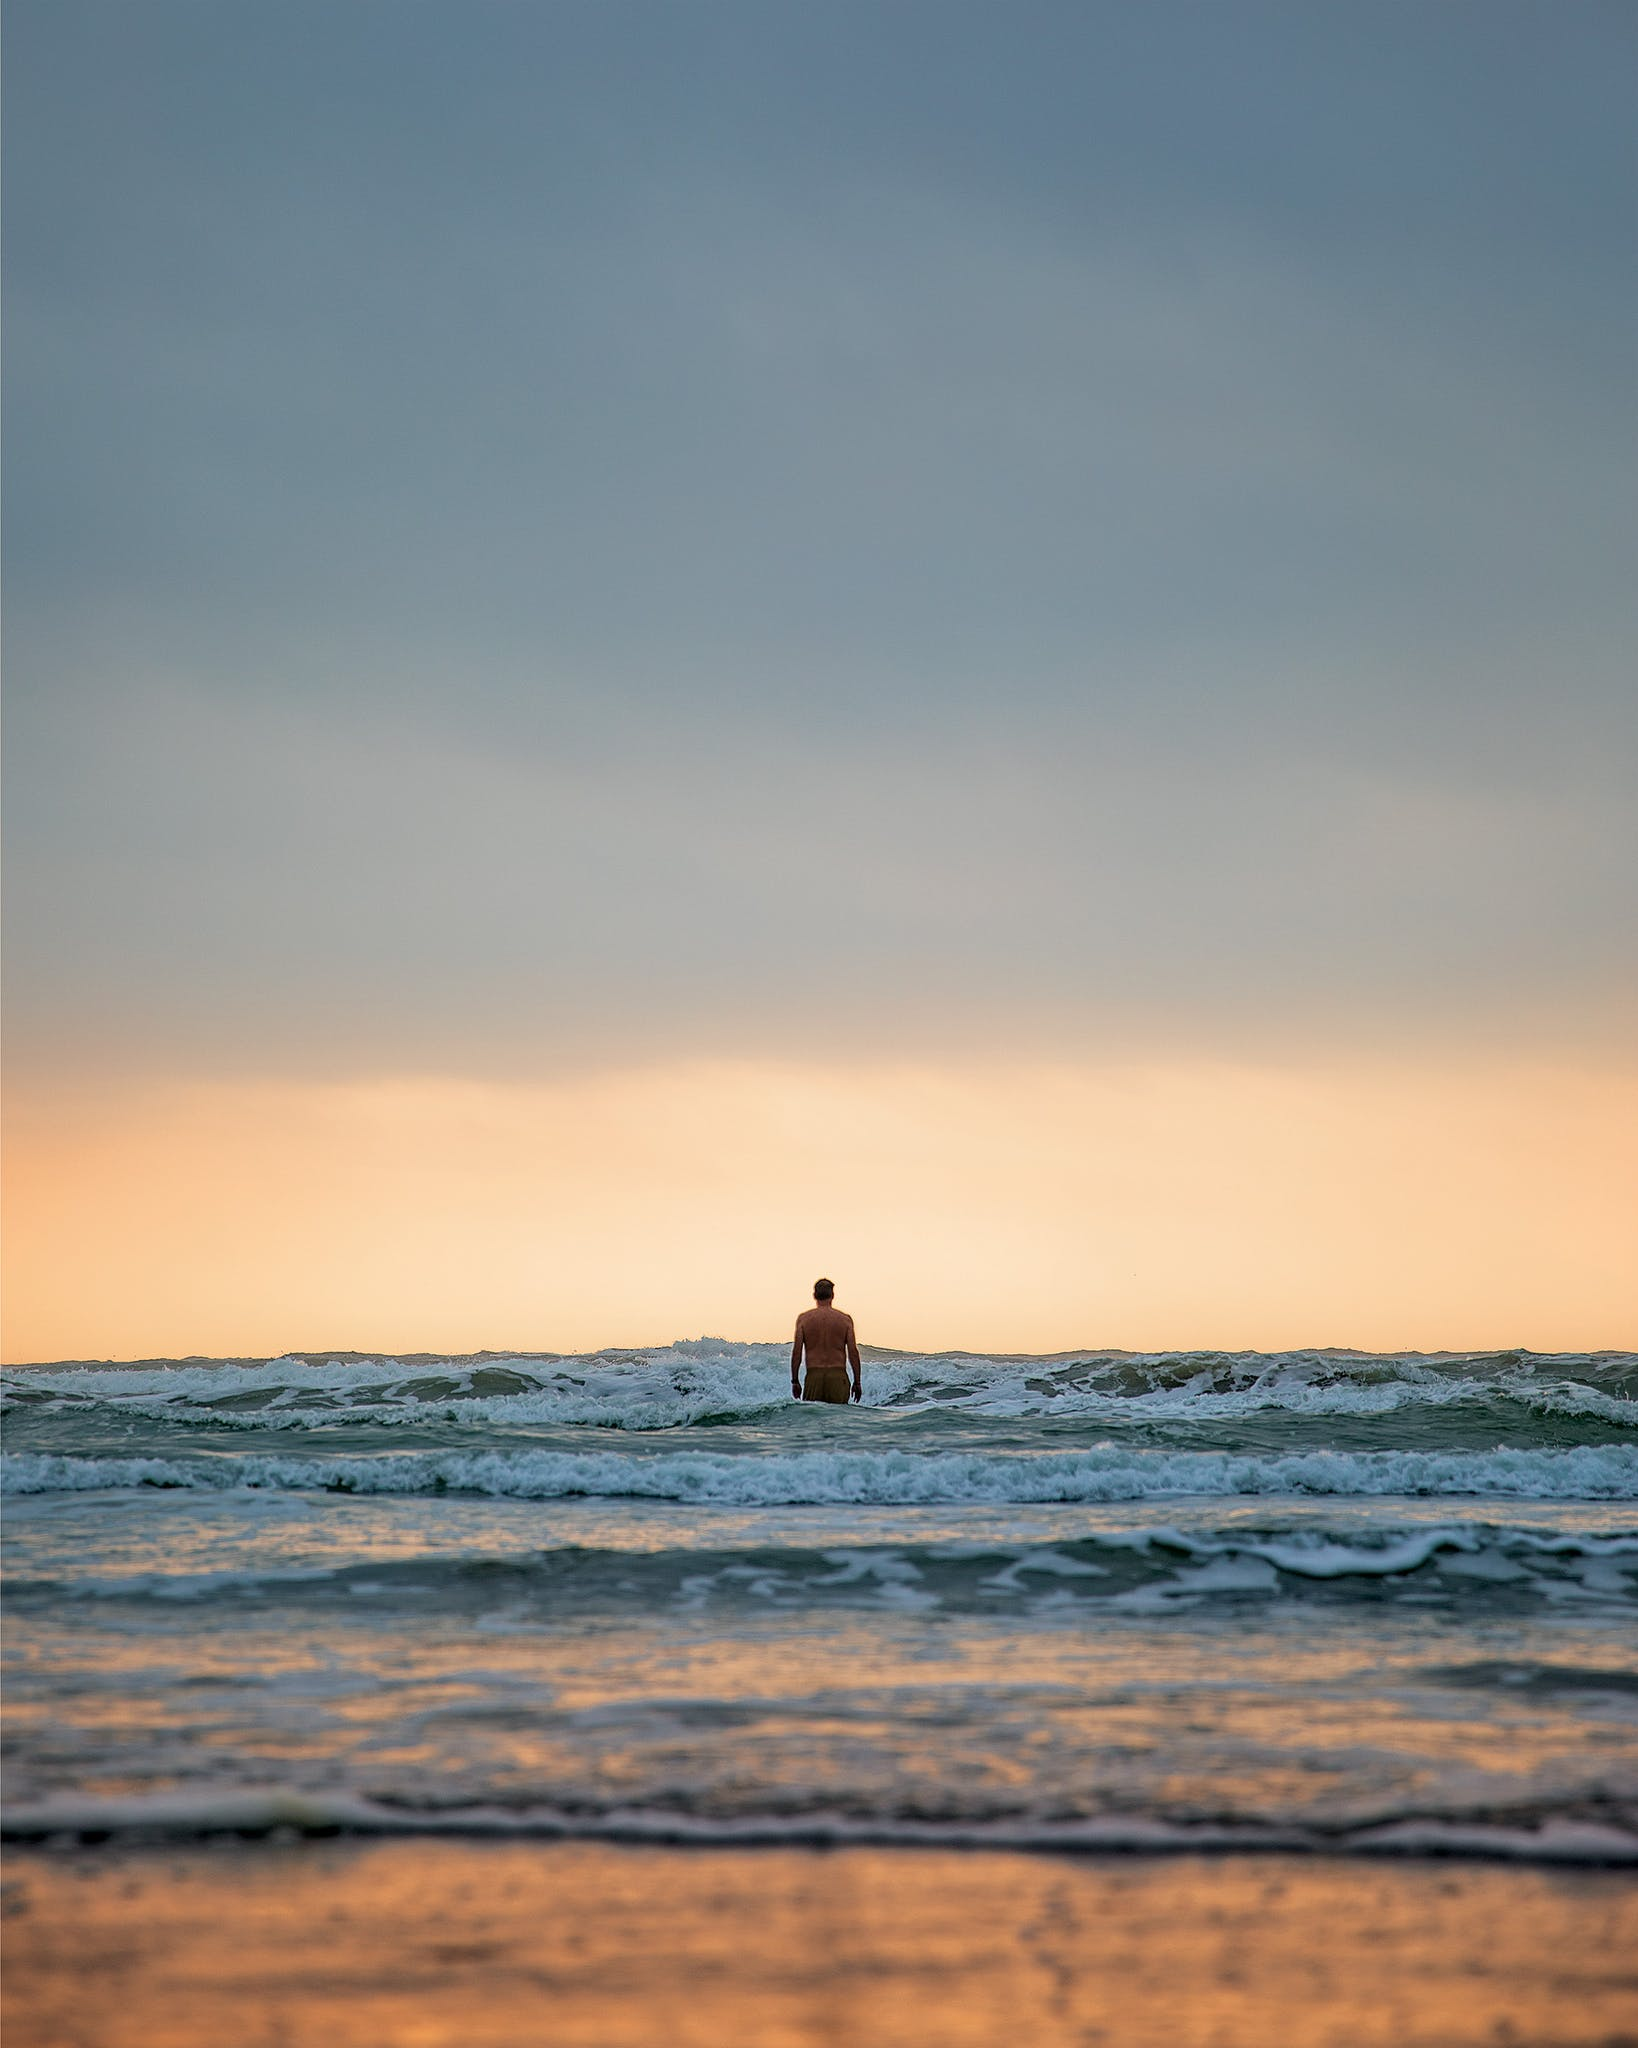 Writer David Courtney takes an early morning dip around mile marker 20 on Padre Island National Seashore on March 24, 2020.